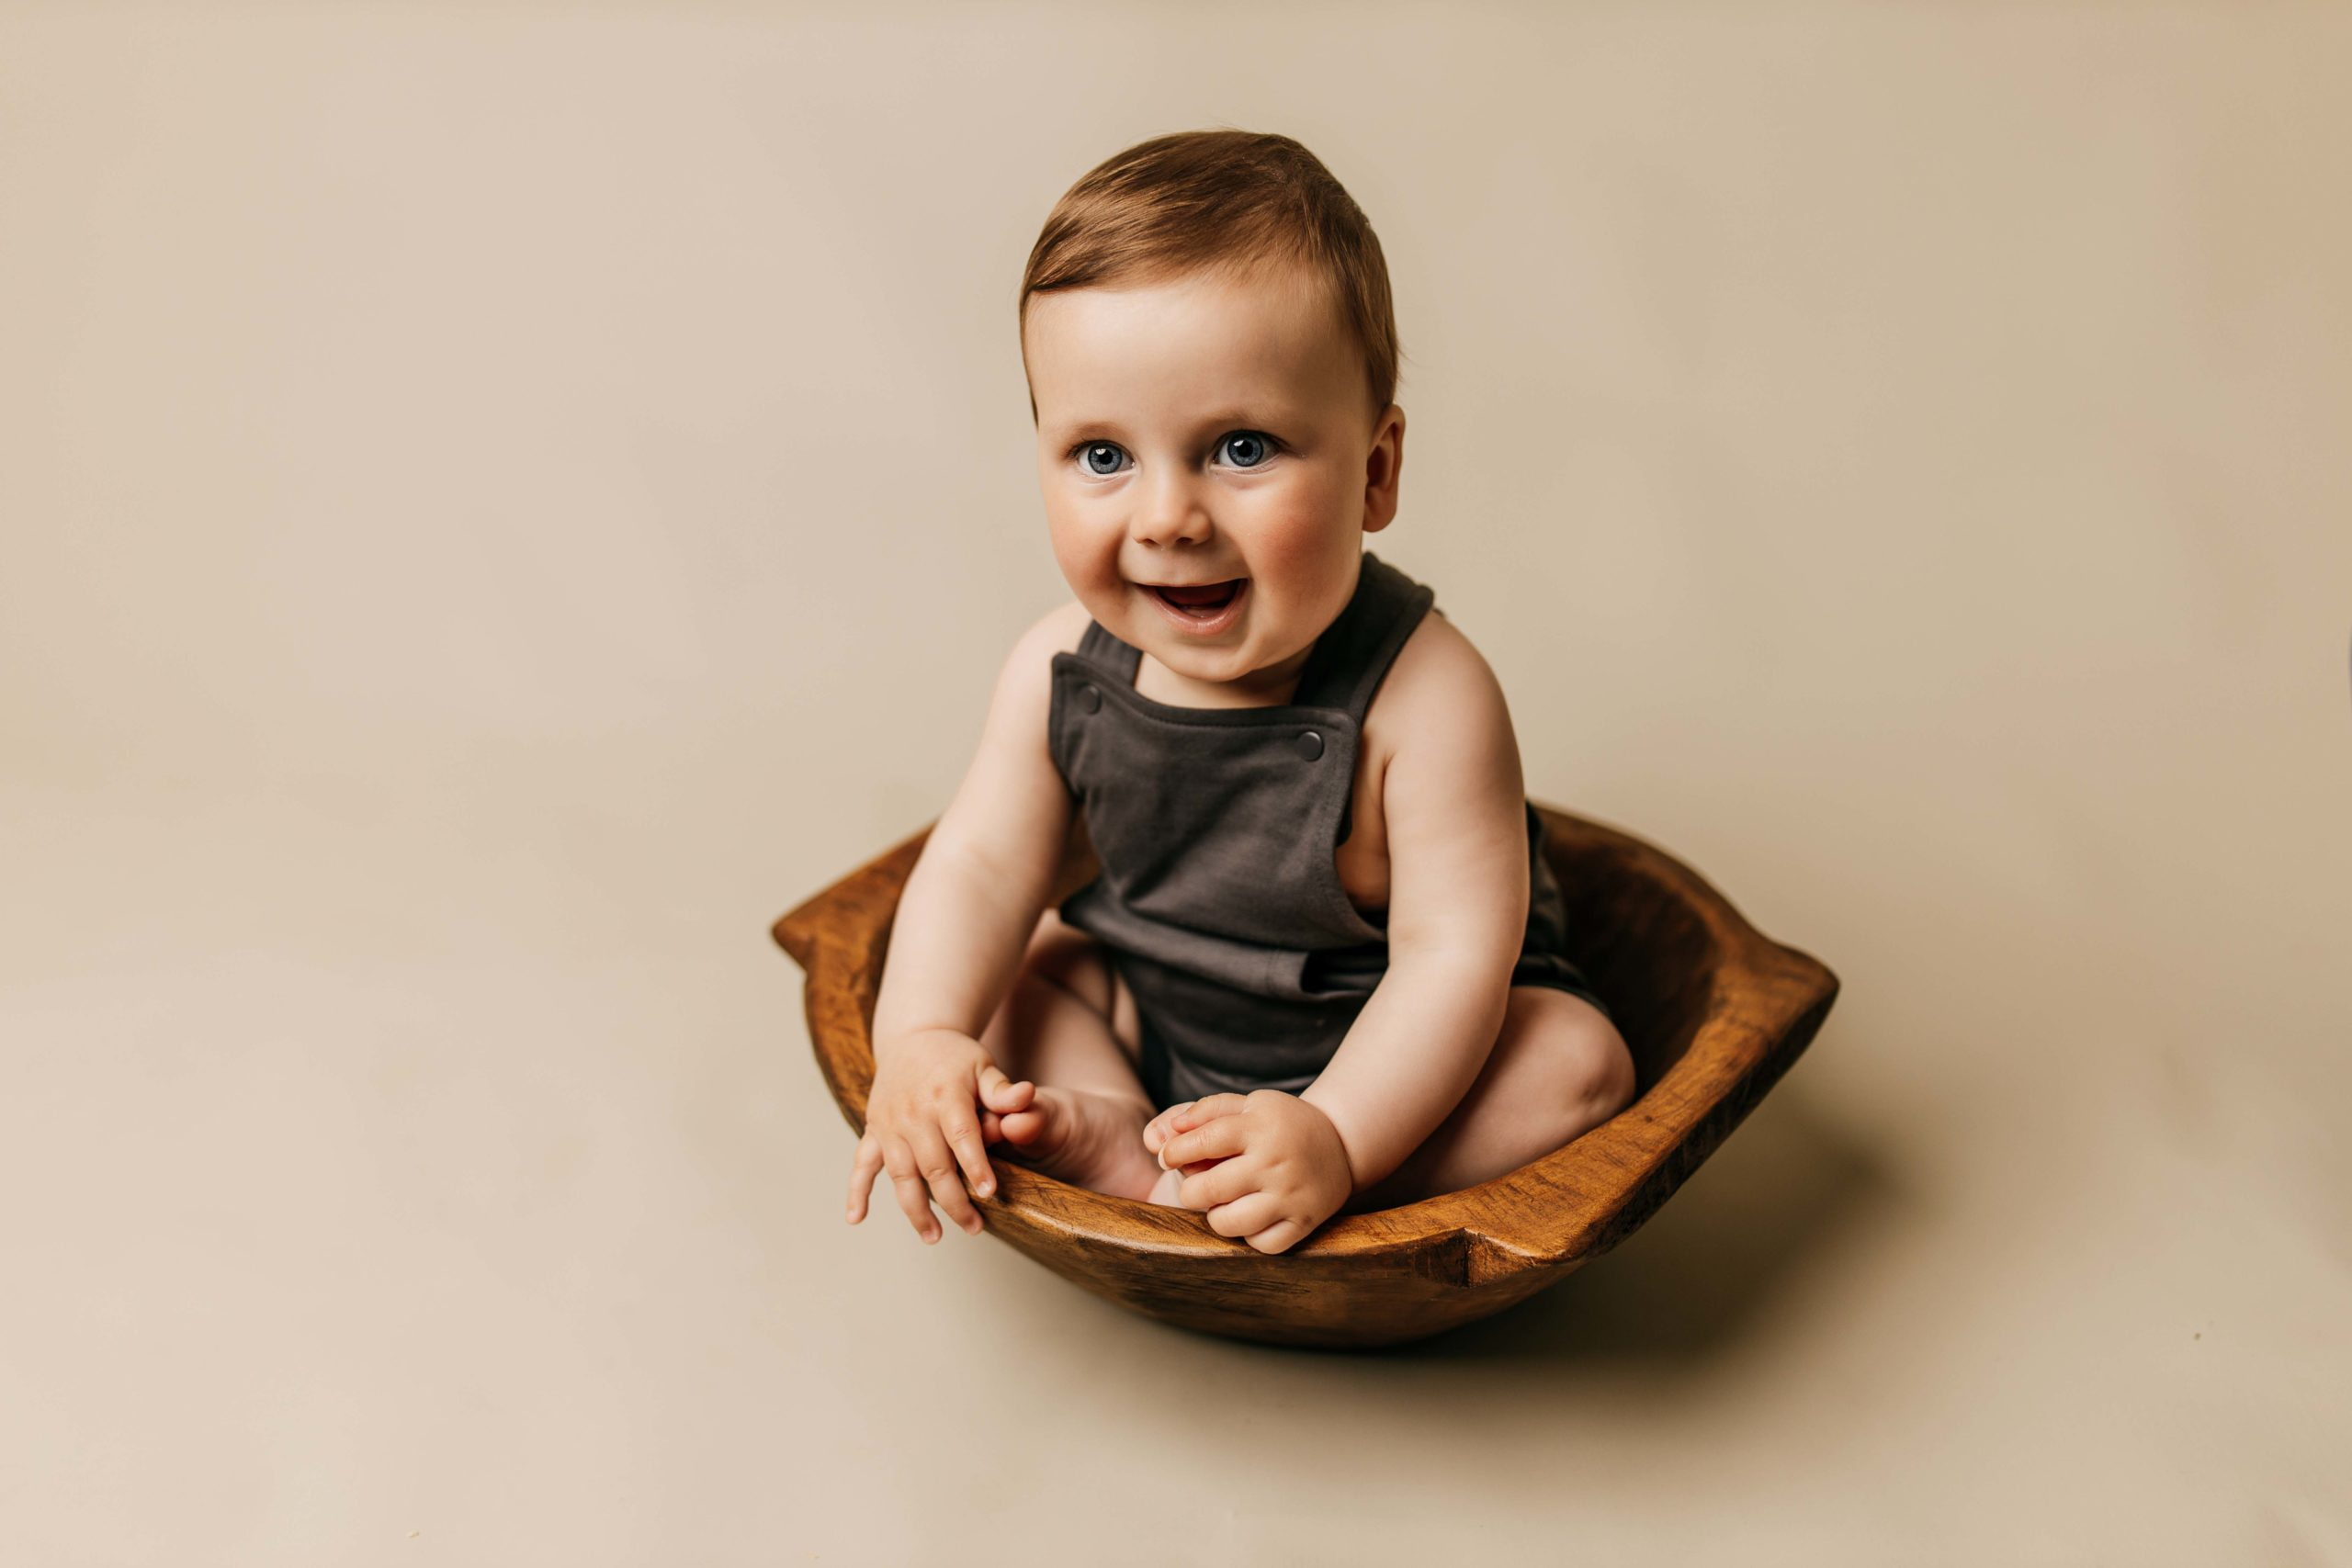 six month old sitting in dough bowl on tan backdrop